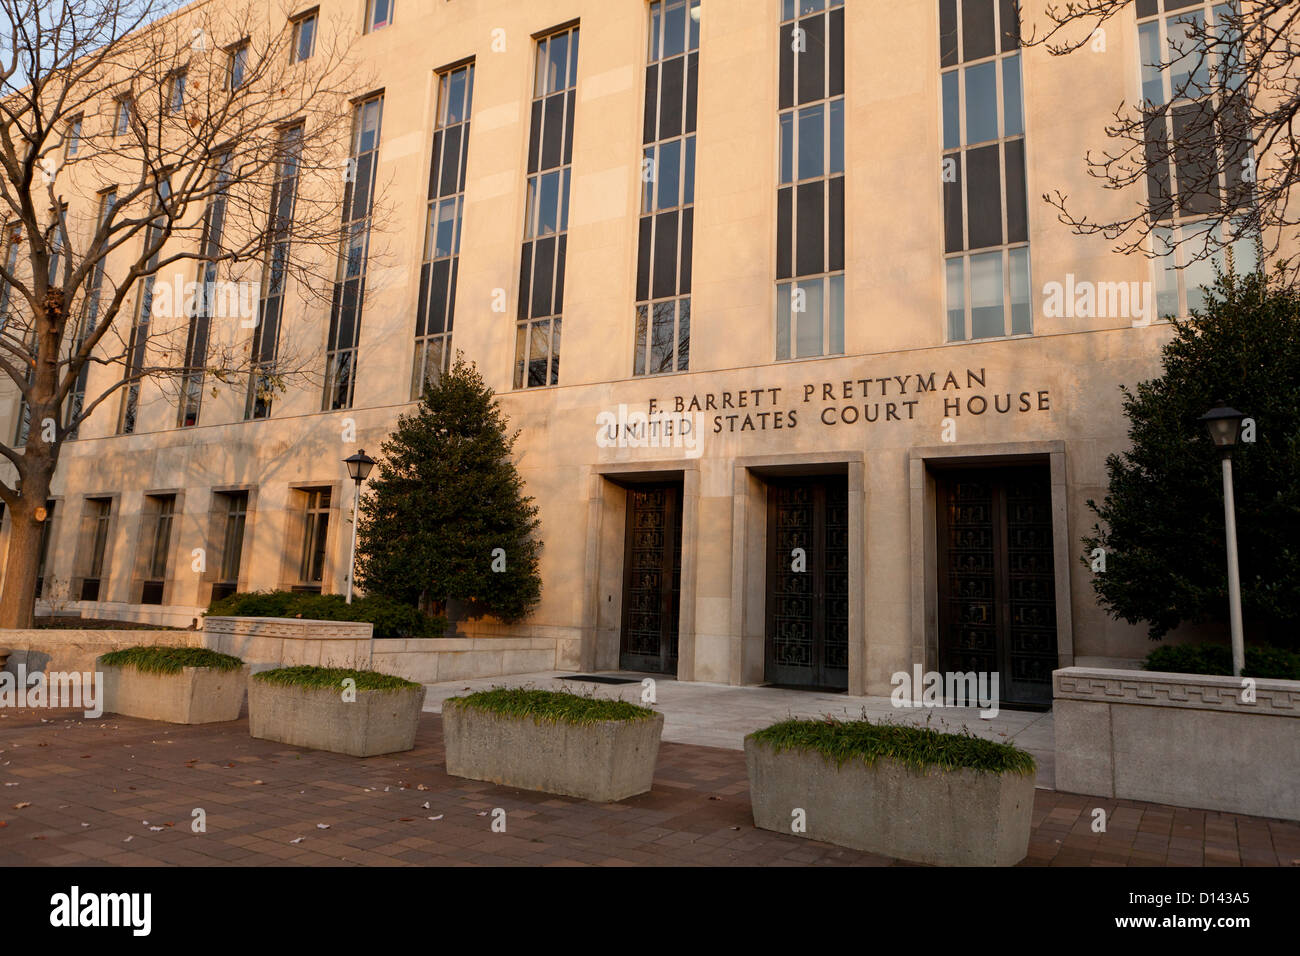 US Courthouse building - Washington, DC USA - Stock Image